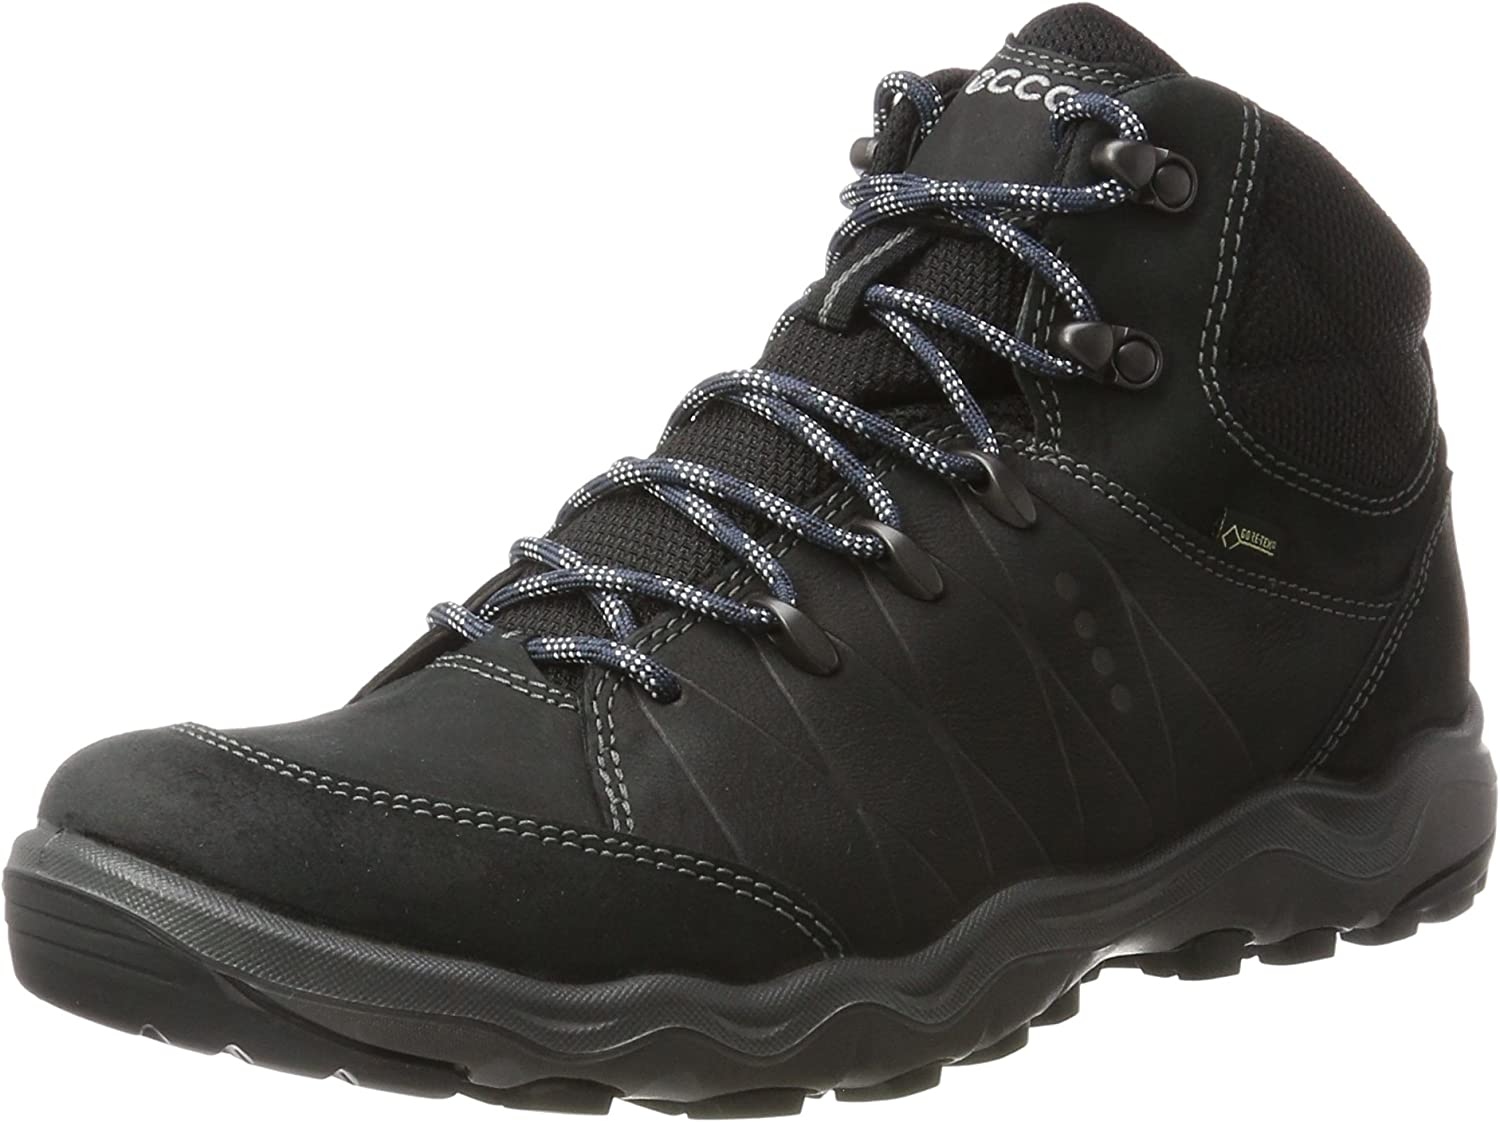 ECCO Men's Ulterra Multisport Outdoor shoes